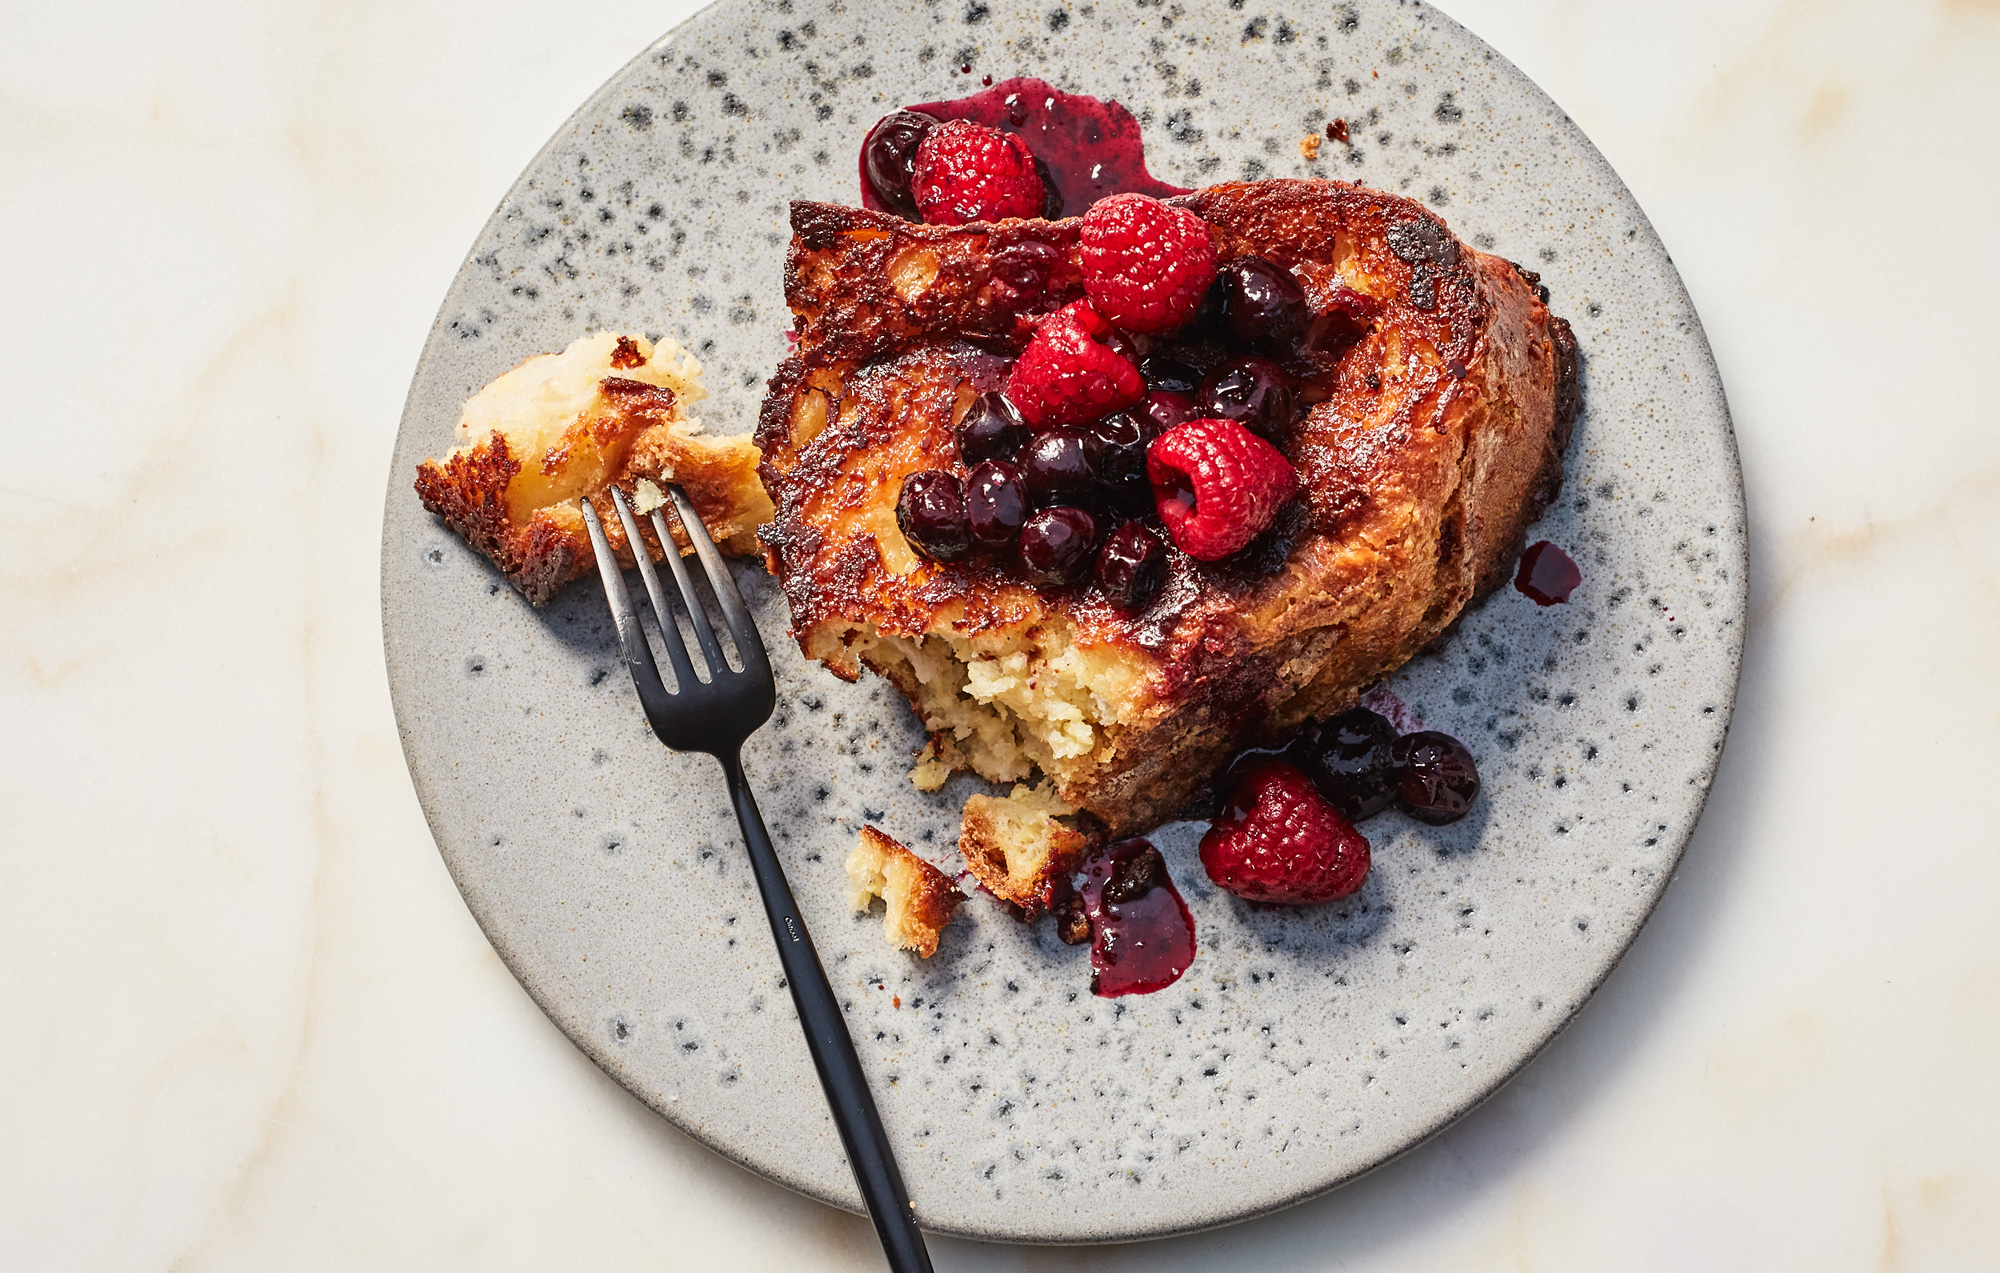 20201122_NYTC_JM_frenchToast_0245